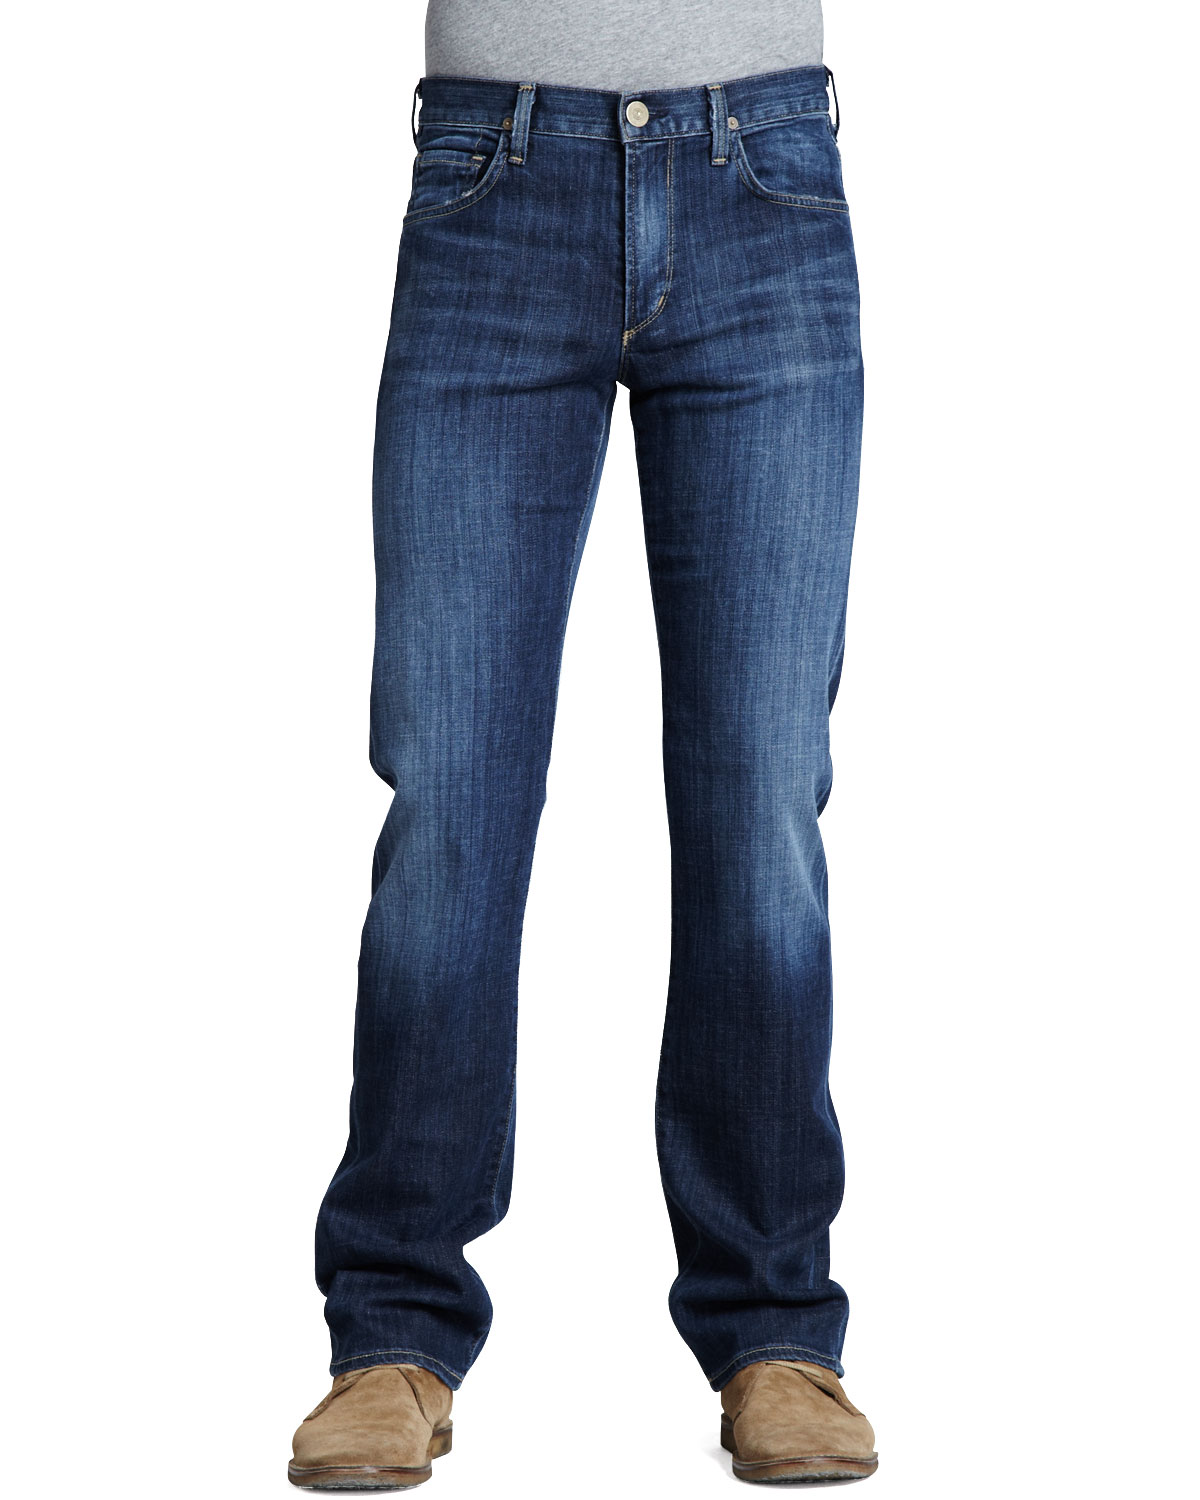 Mens Sid Straight Nigel Jeans   Citizens of Humanity   Nigel (36)